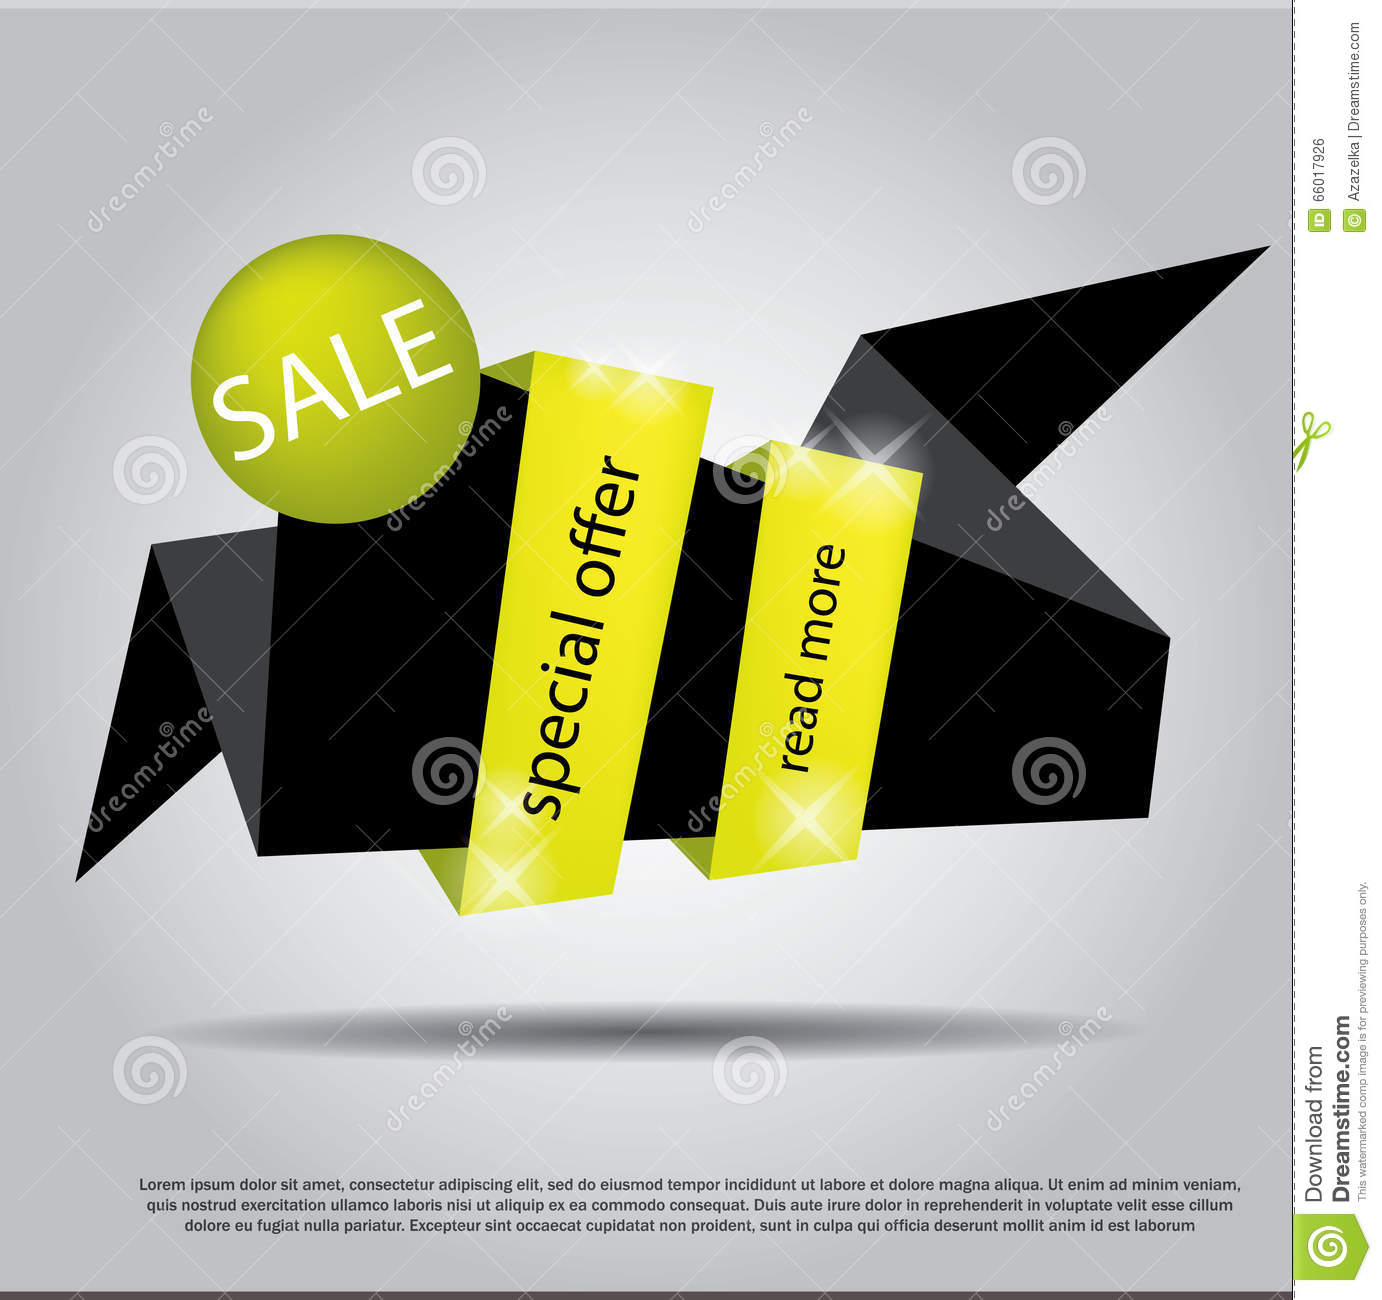 Poster design eps - Royalty Free Vector